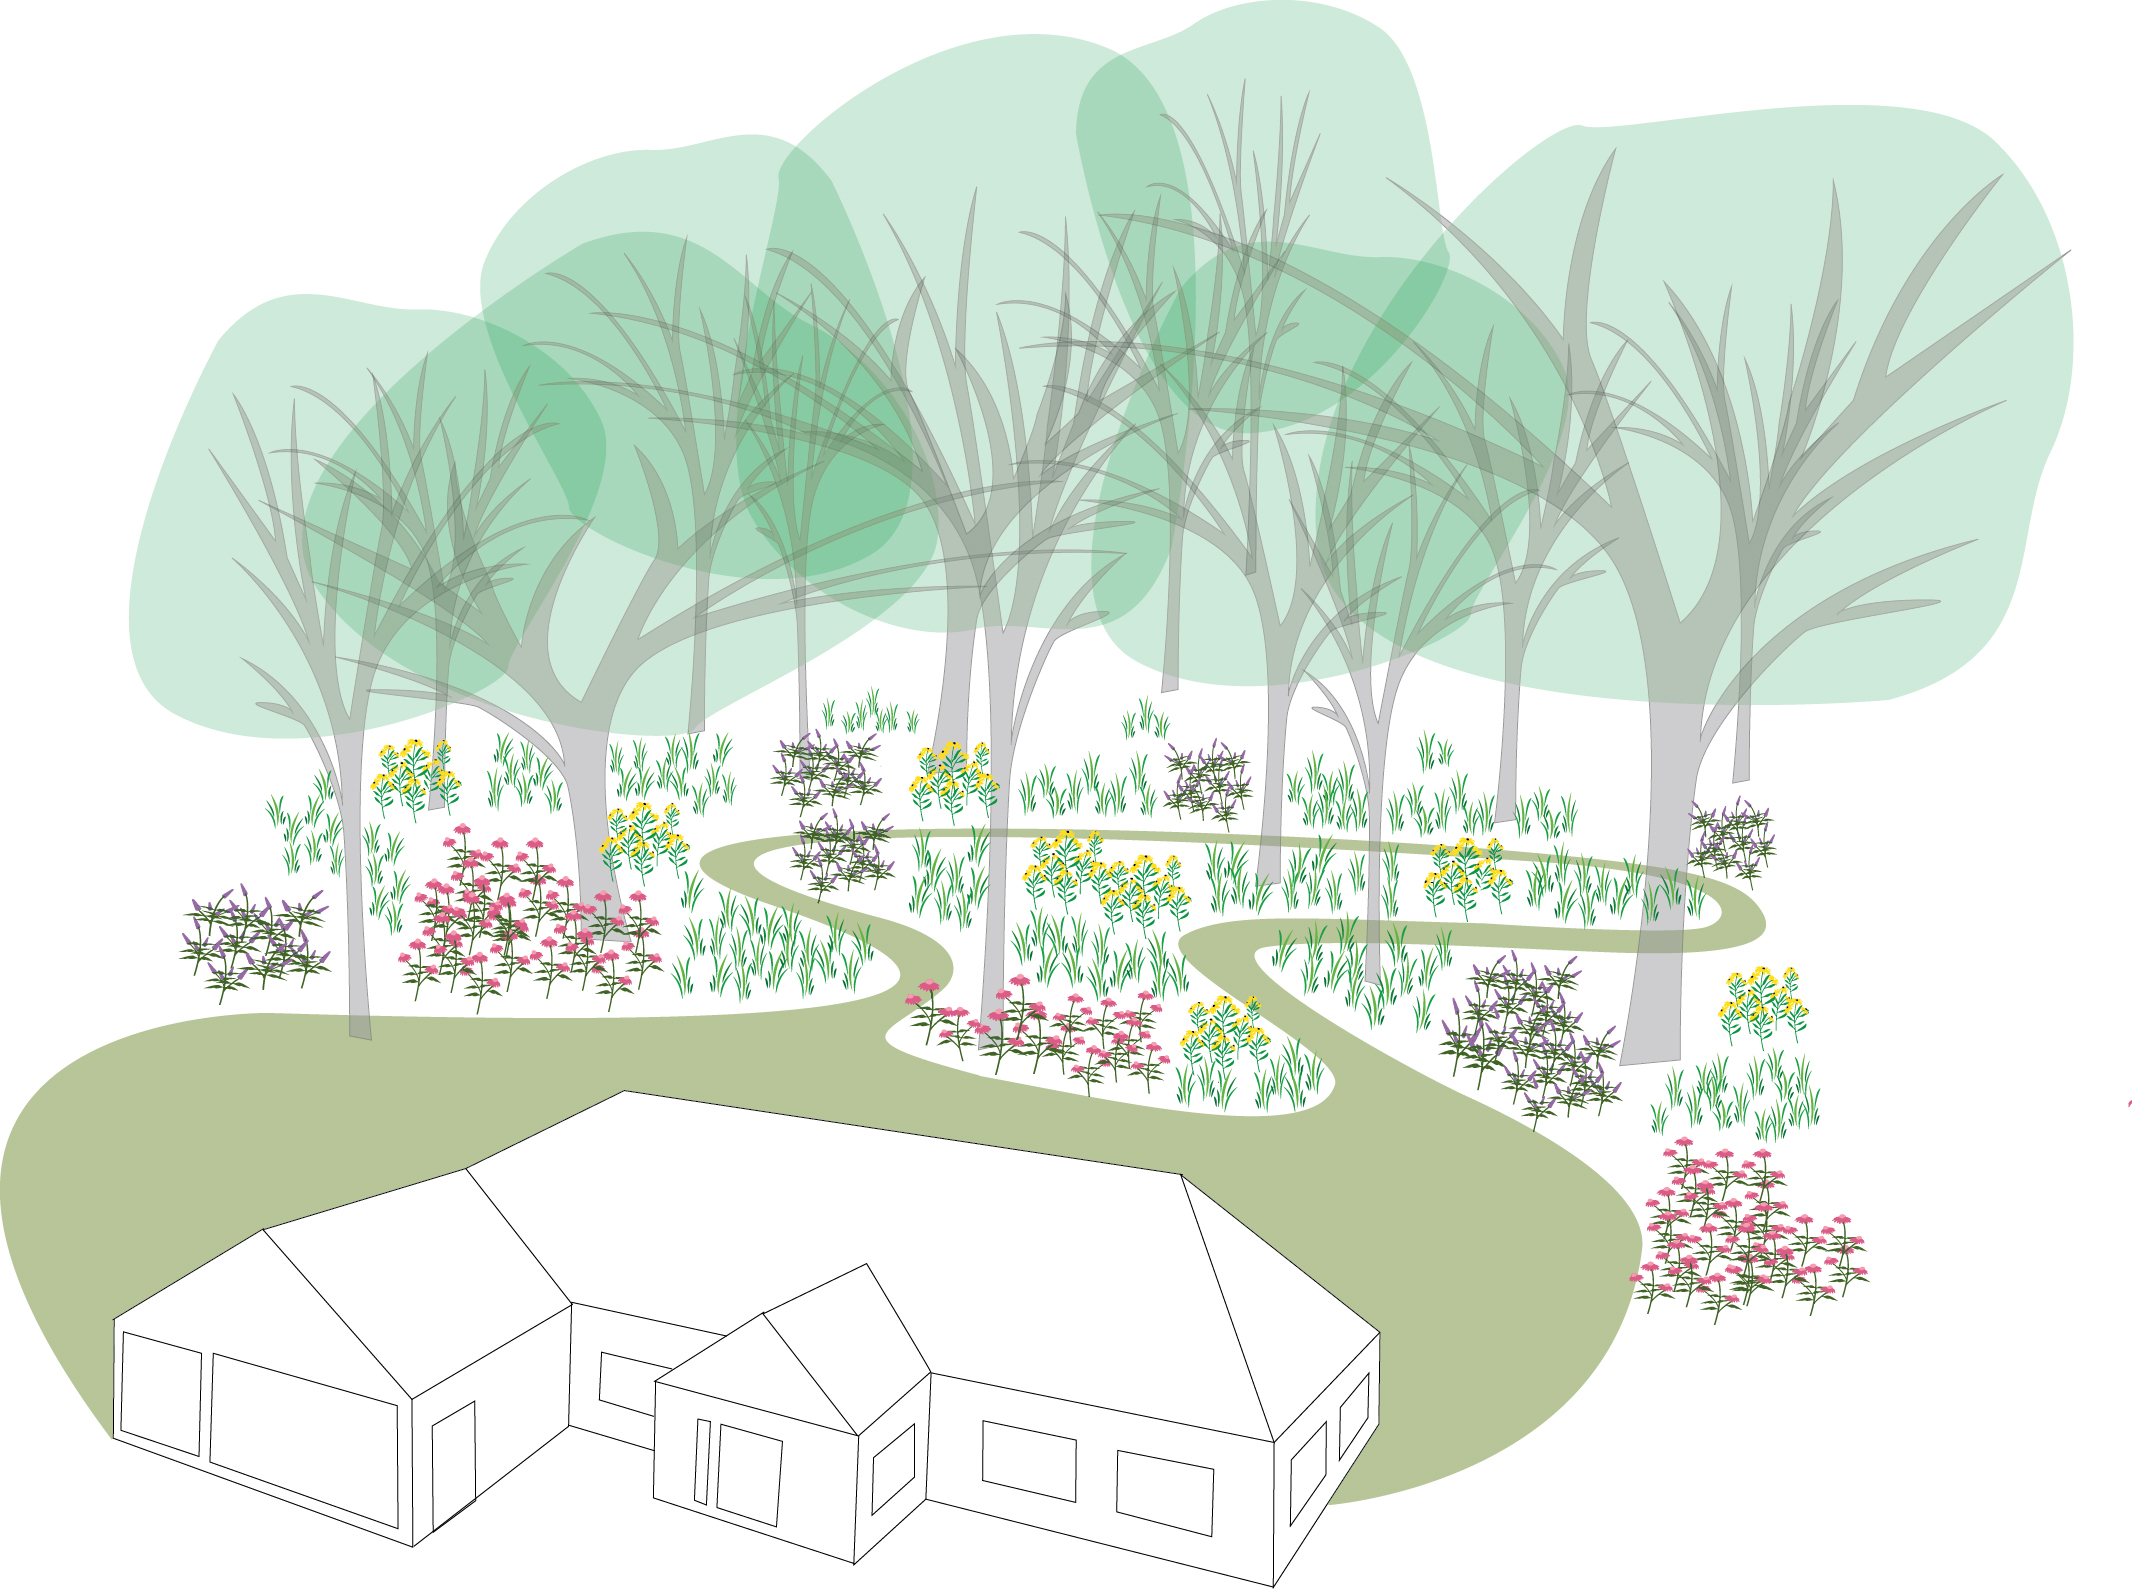 Restoring a woodland begins with an act of the imagination as it often hard to see through a dense understory what potential lies there. As this illustration suggests, clearing the understory, thinning out the canopy, restoring the ground cover, and creating paths can make the woodland part of your residential landscape.Illustration by Steve Heymans.